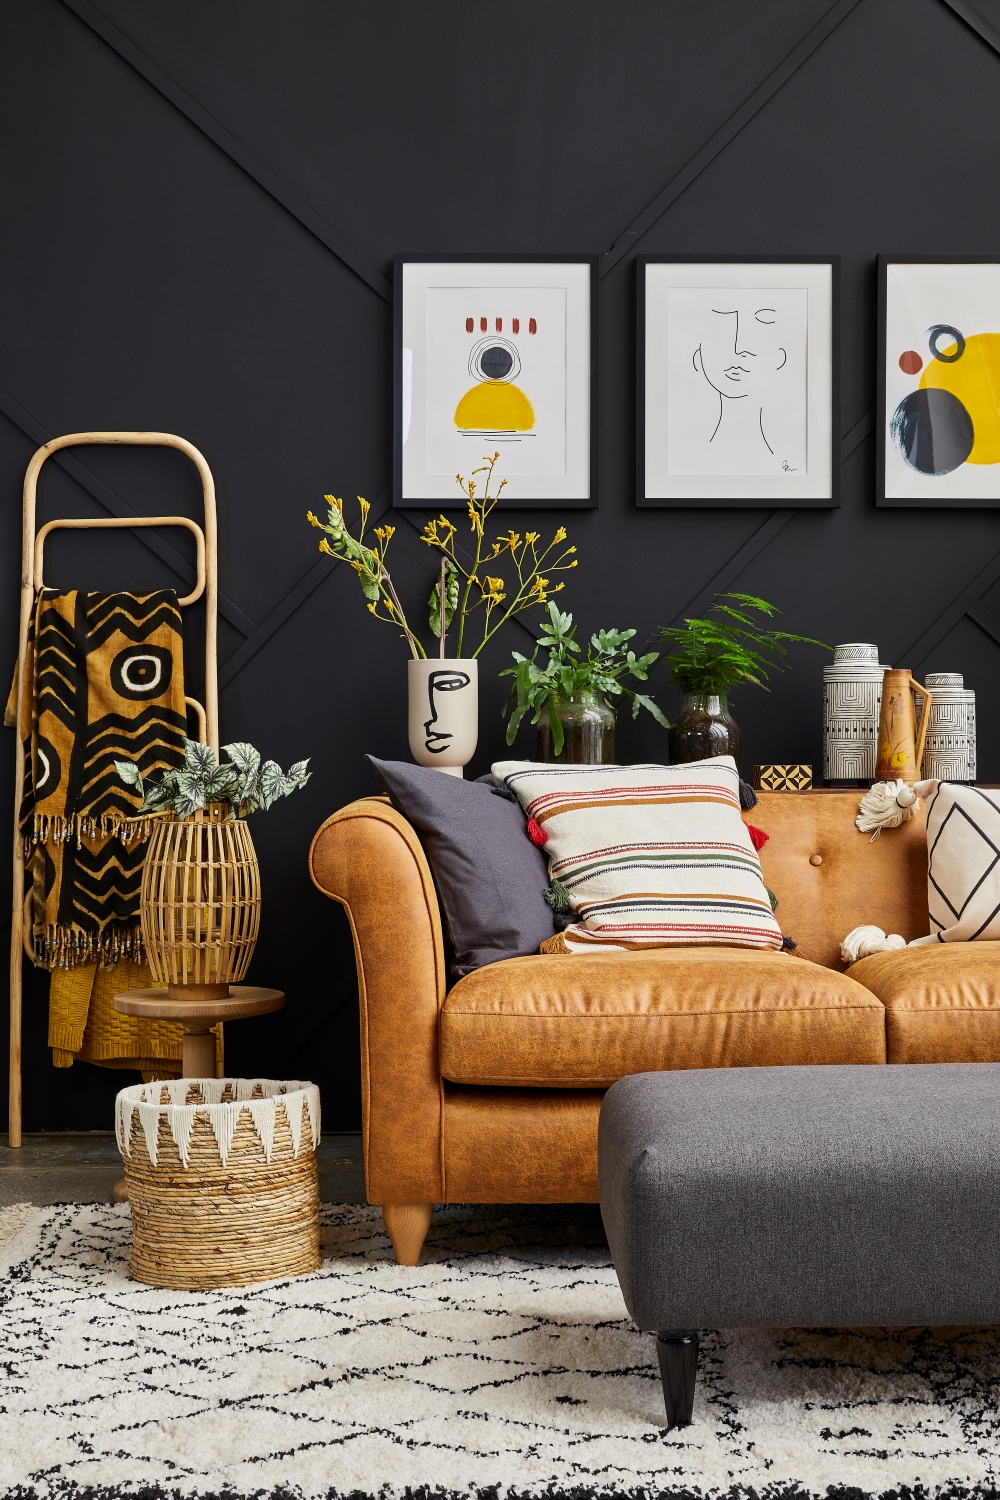 5 Top Tips to Remember When Buying a Sofa Online